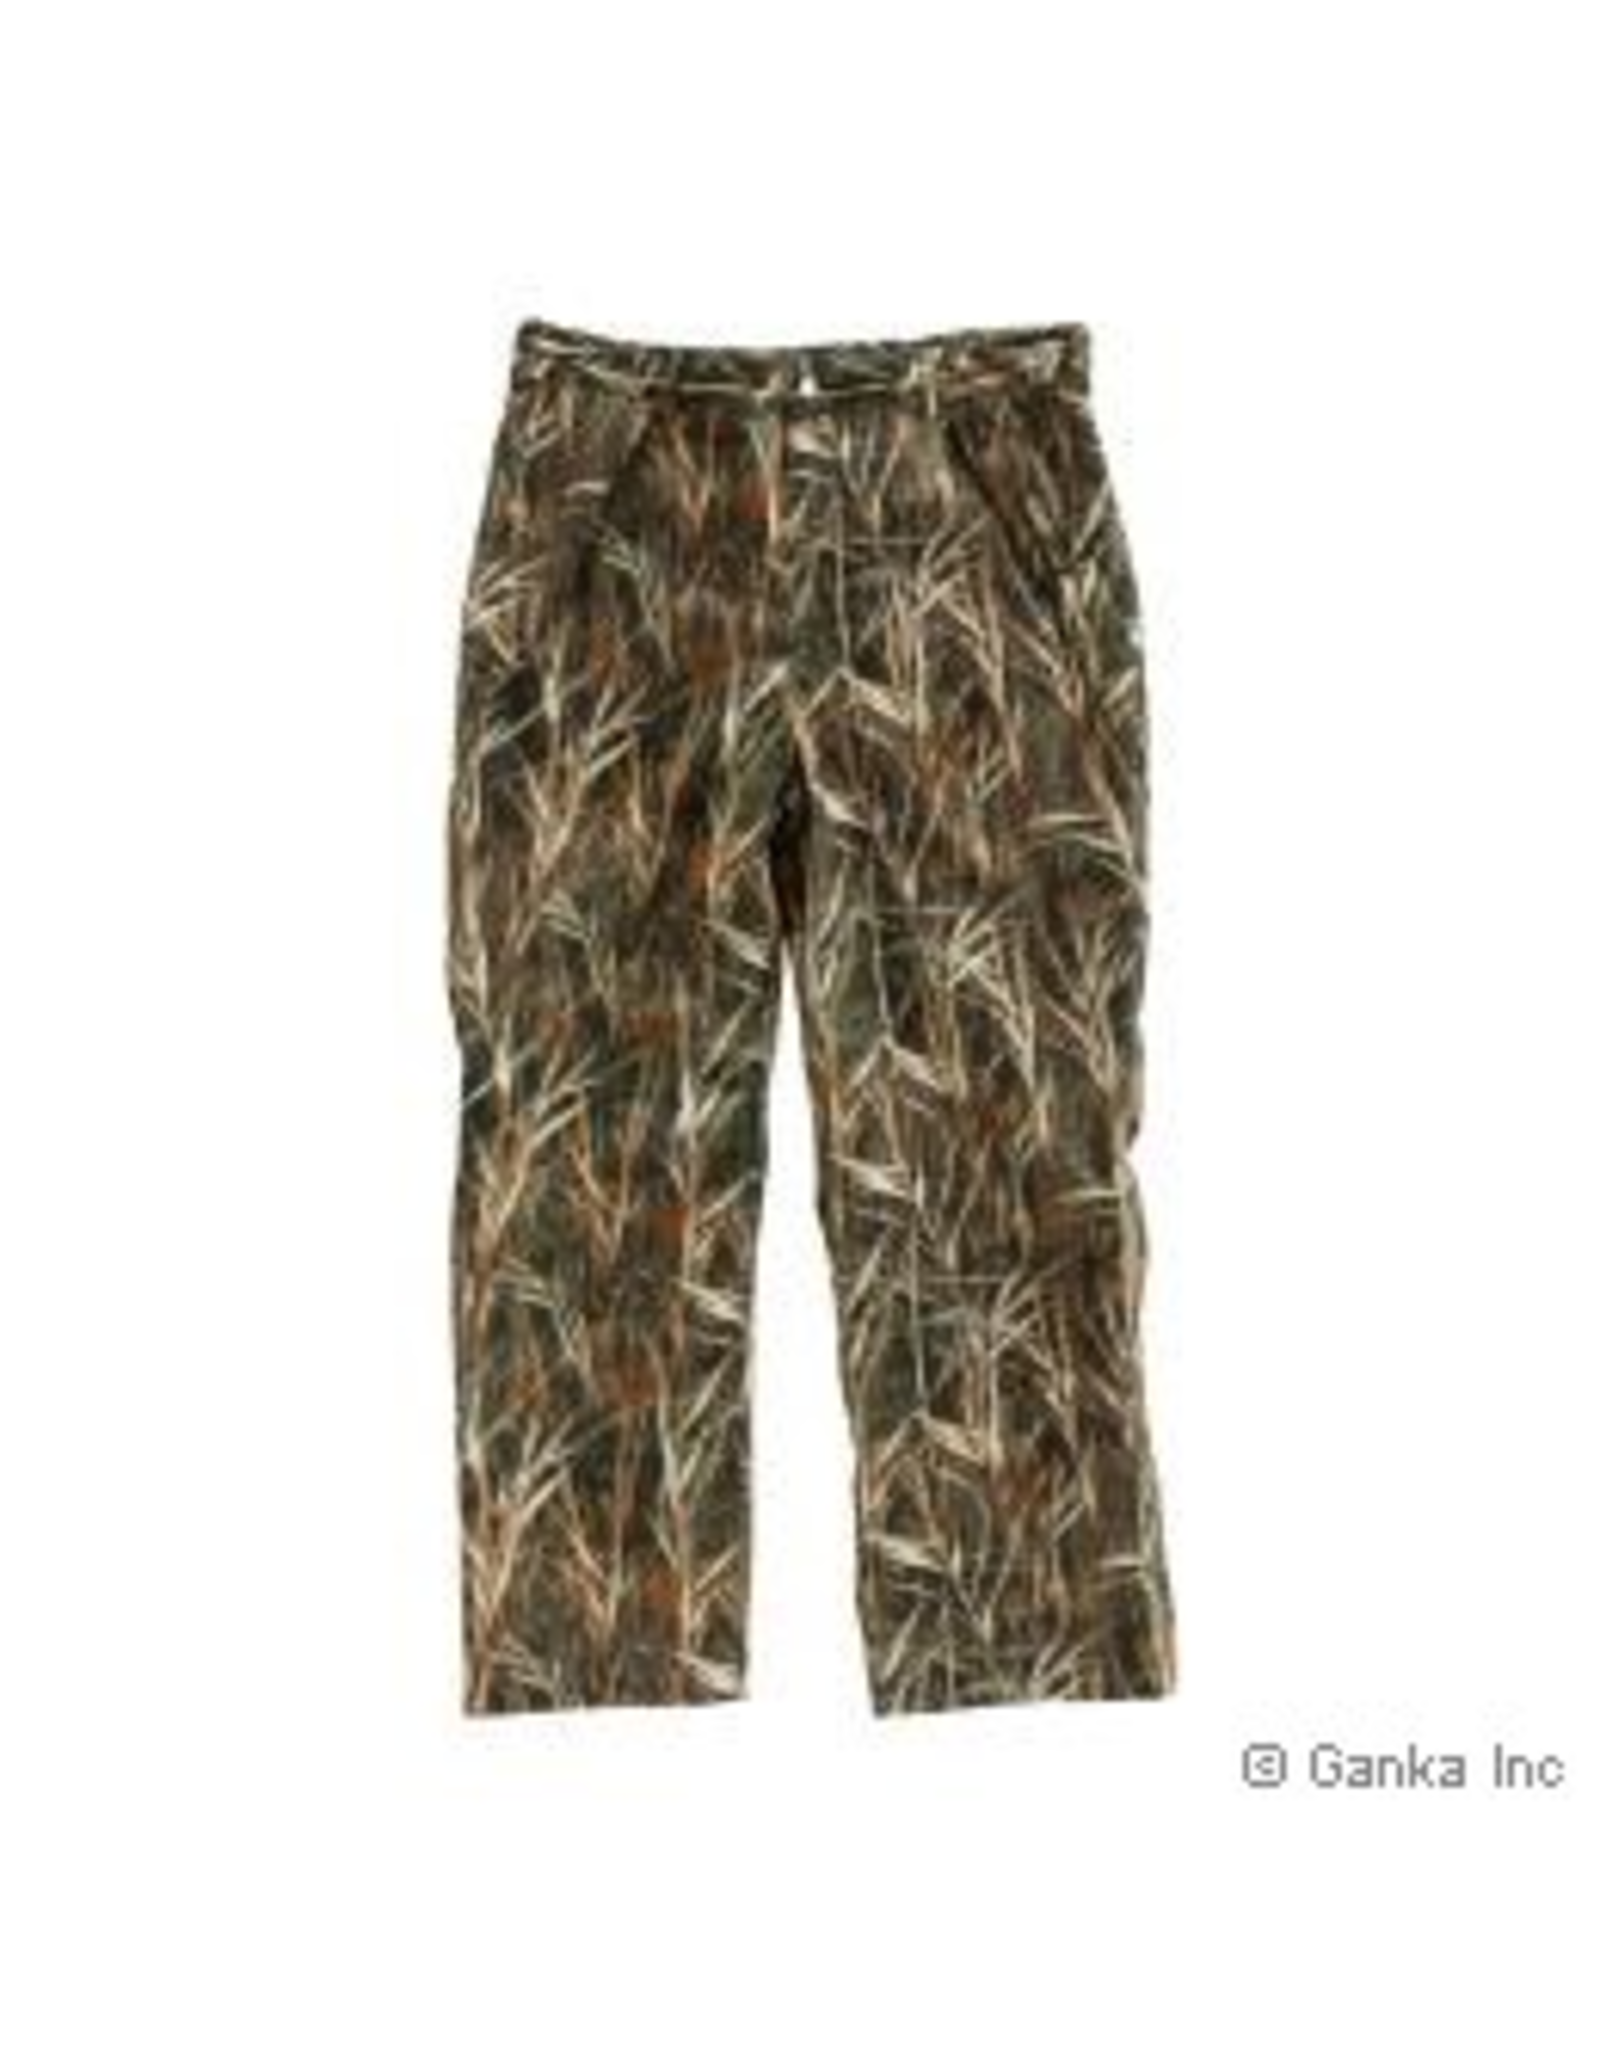 GKS GKS Mens Hunting Waist Pants, 100% Poly. with Leg Zipper